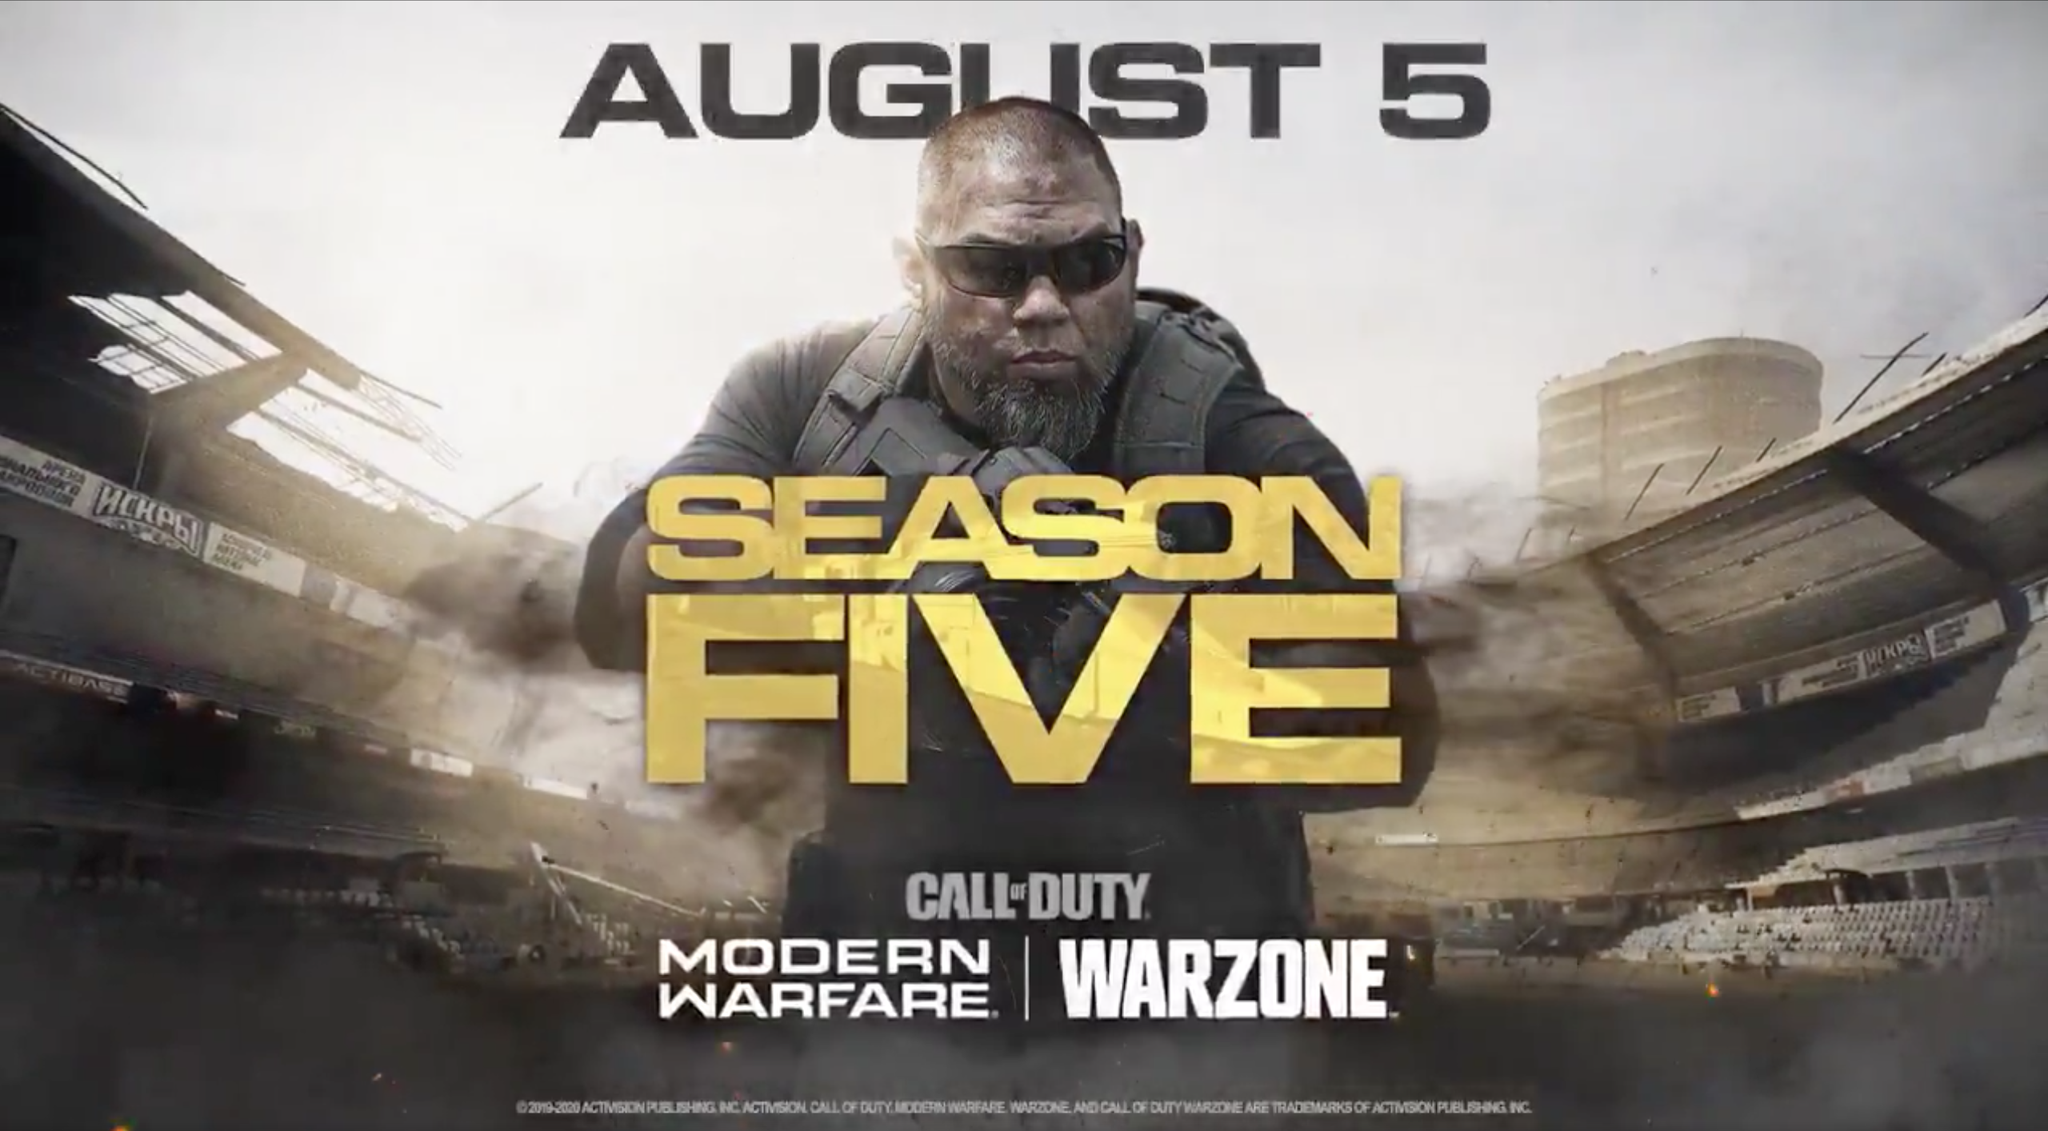 Call Of Duty Warzone Season 5 News On Twitter Set Your Alarms